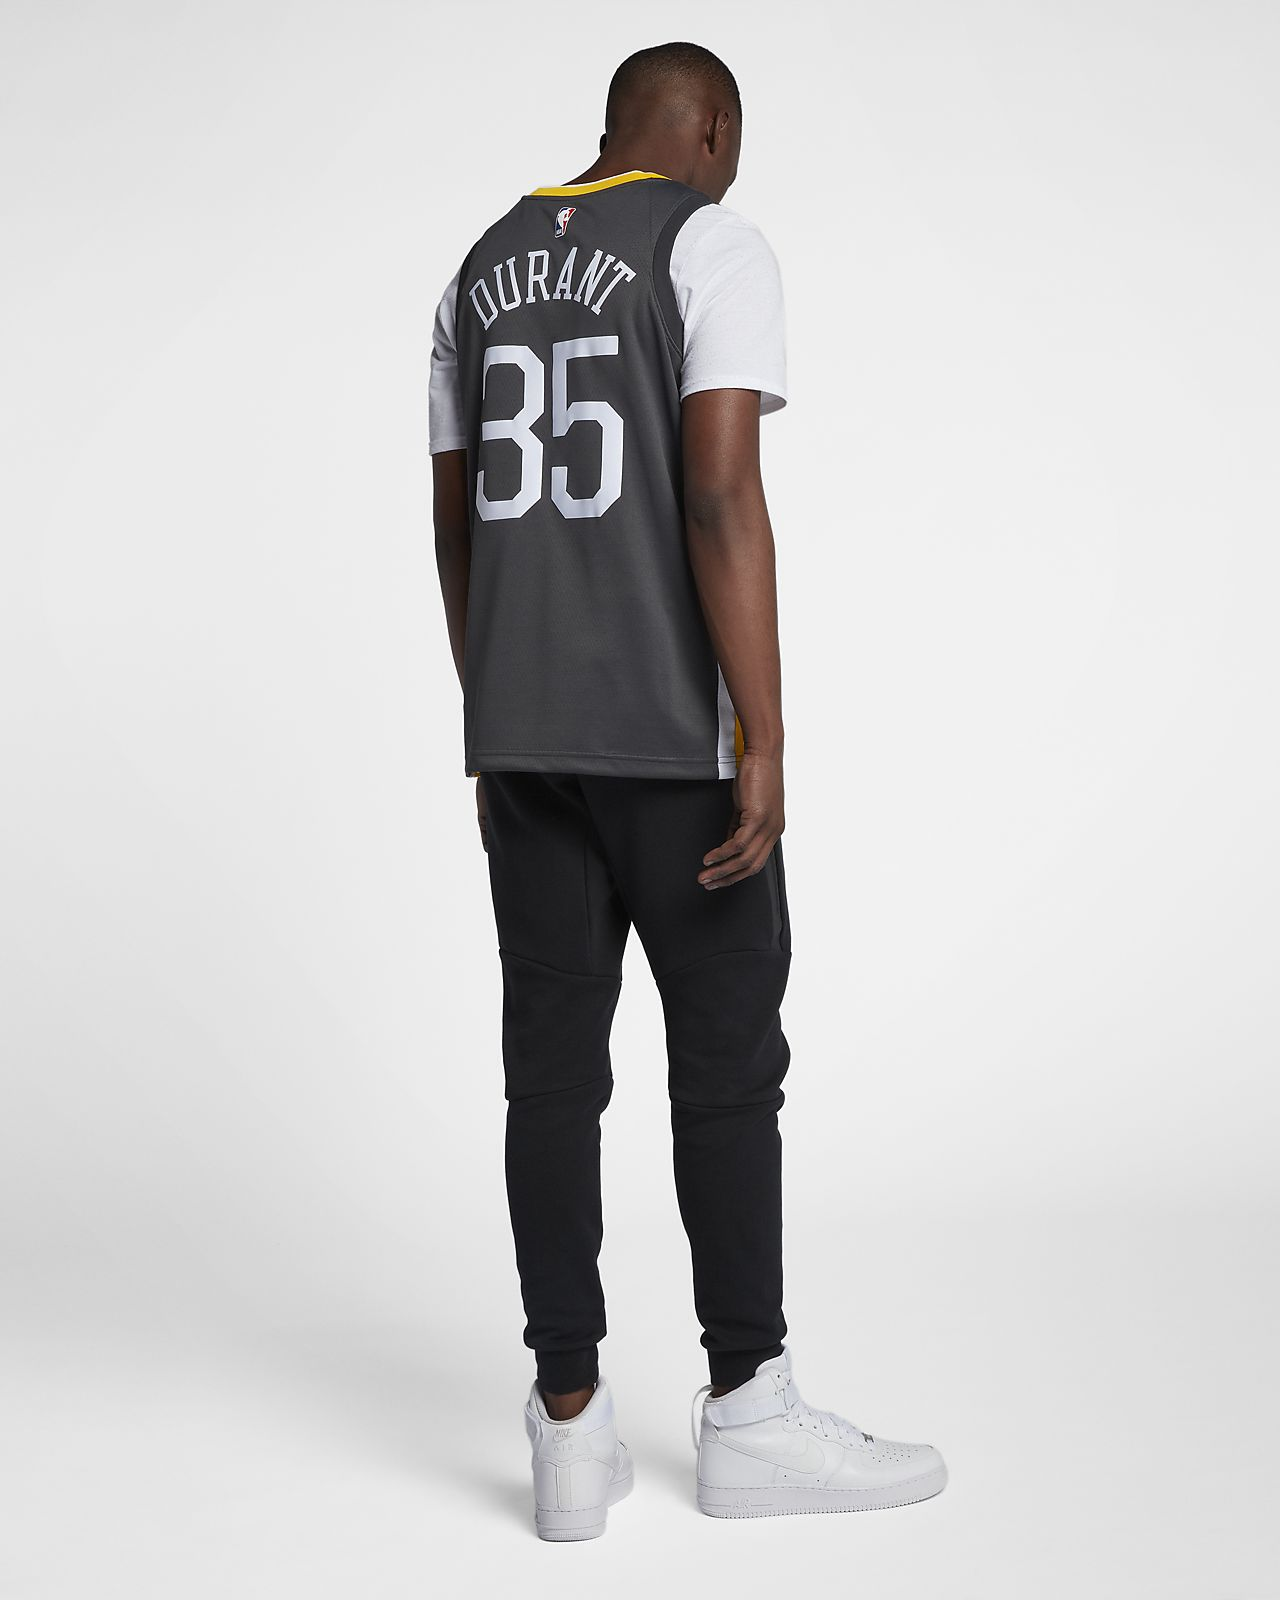 e2a4152b0 ... Kevin Durant Statement Edition Swingman (Golden State Warriors) Men s  Nike NBA Connected Jersey